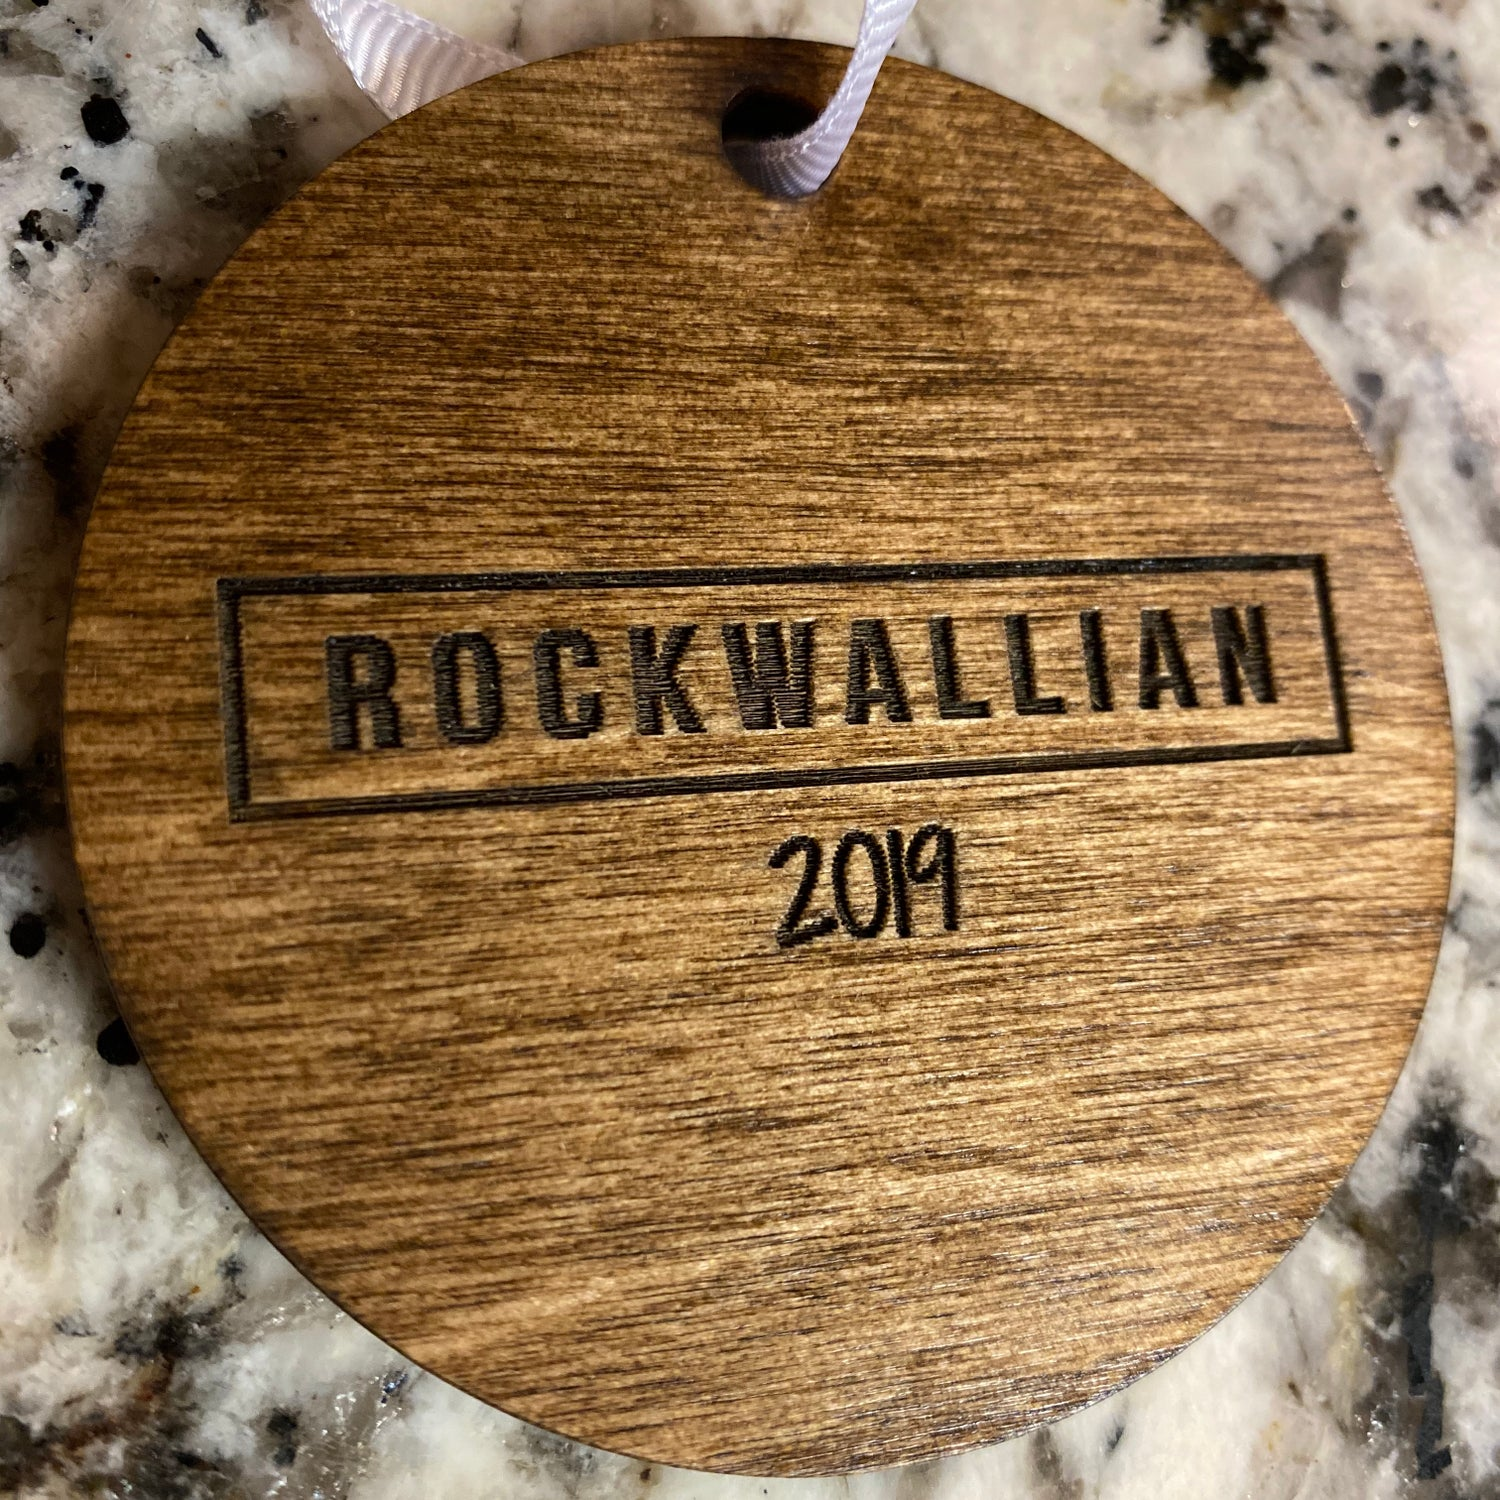 Limited Edition 2019 Rockwallian Charity Christmas ...